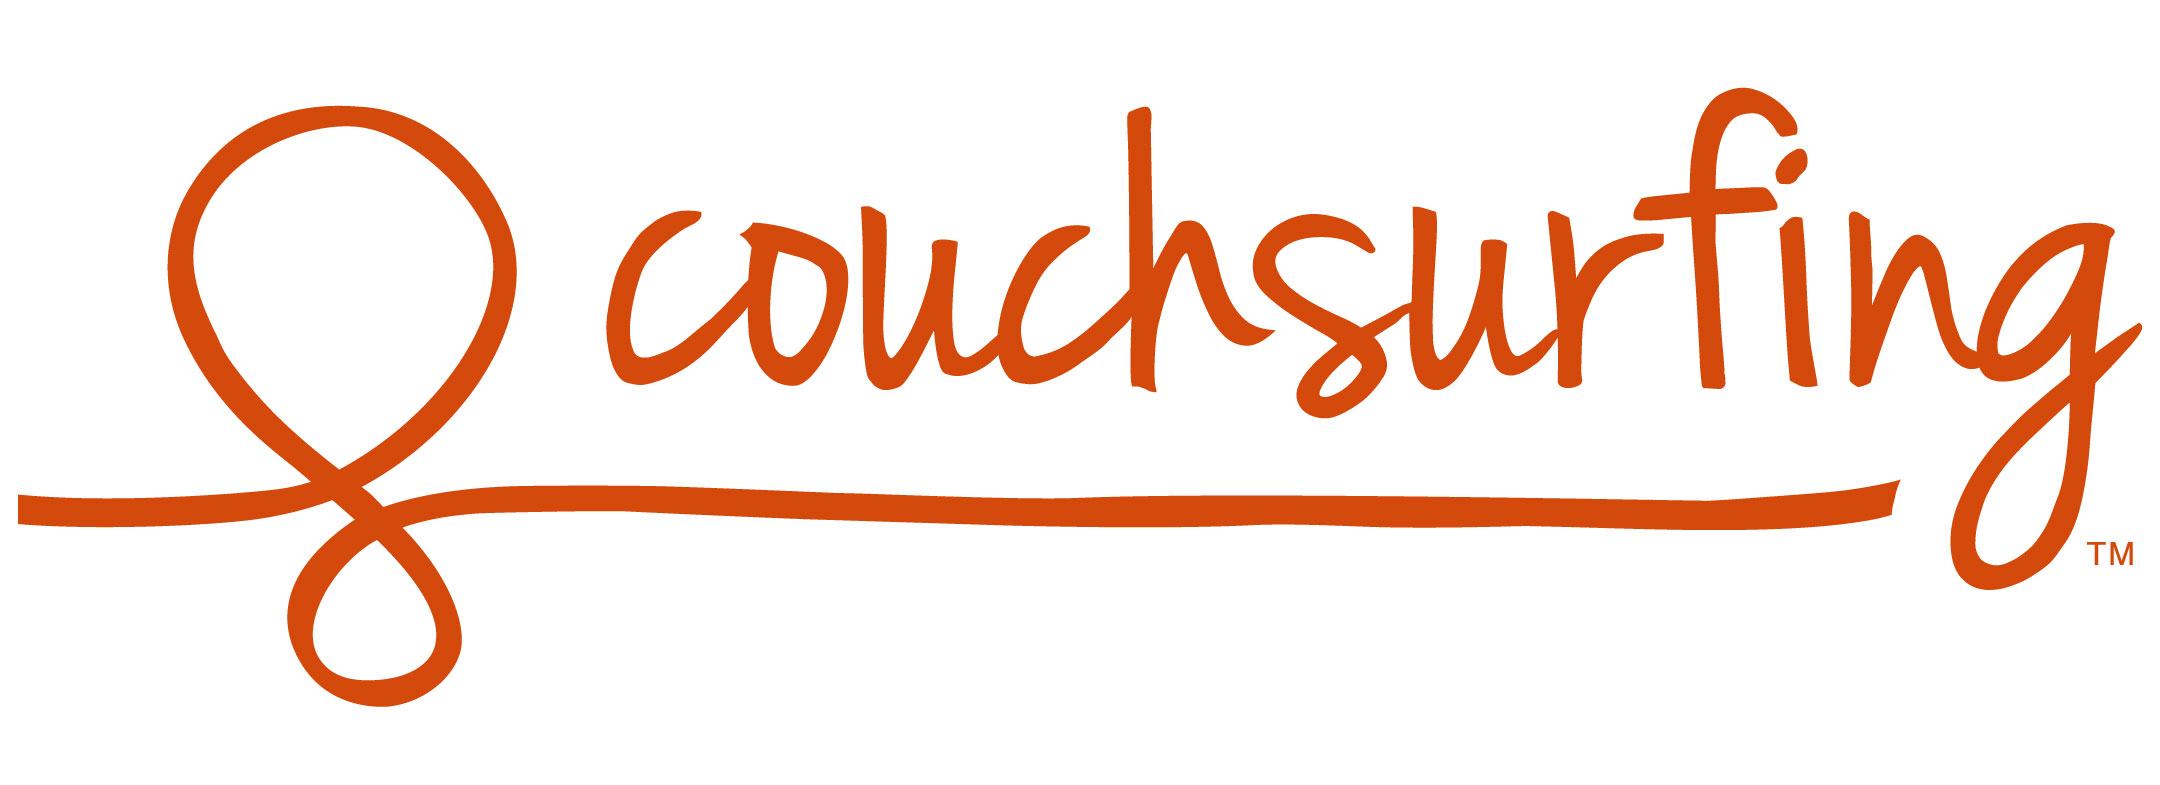 couchsurfing vacation home rental logo